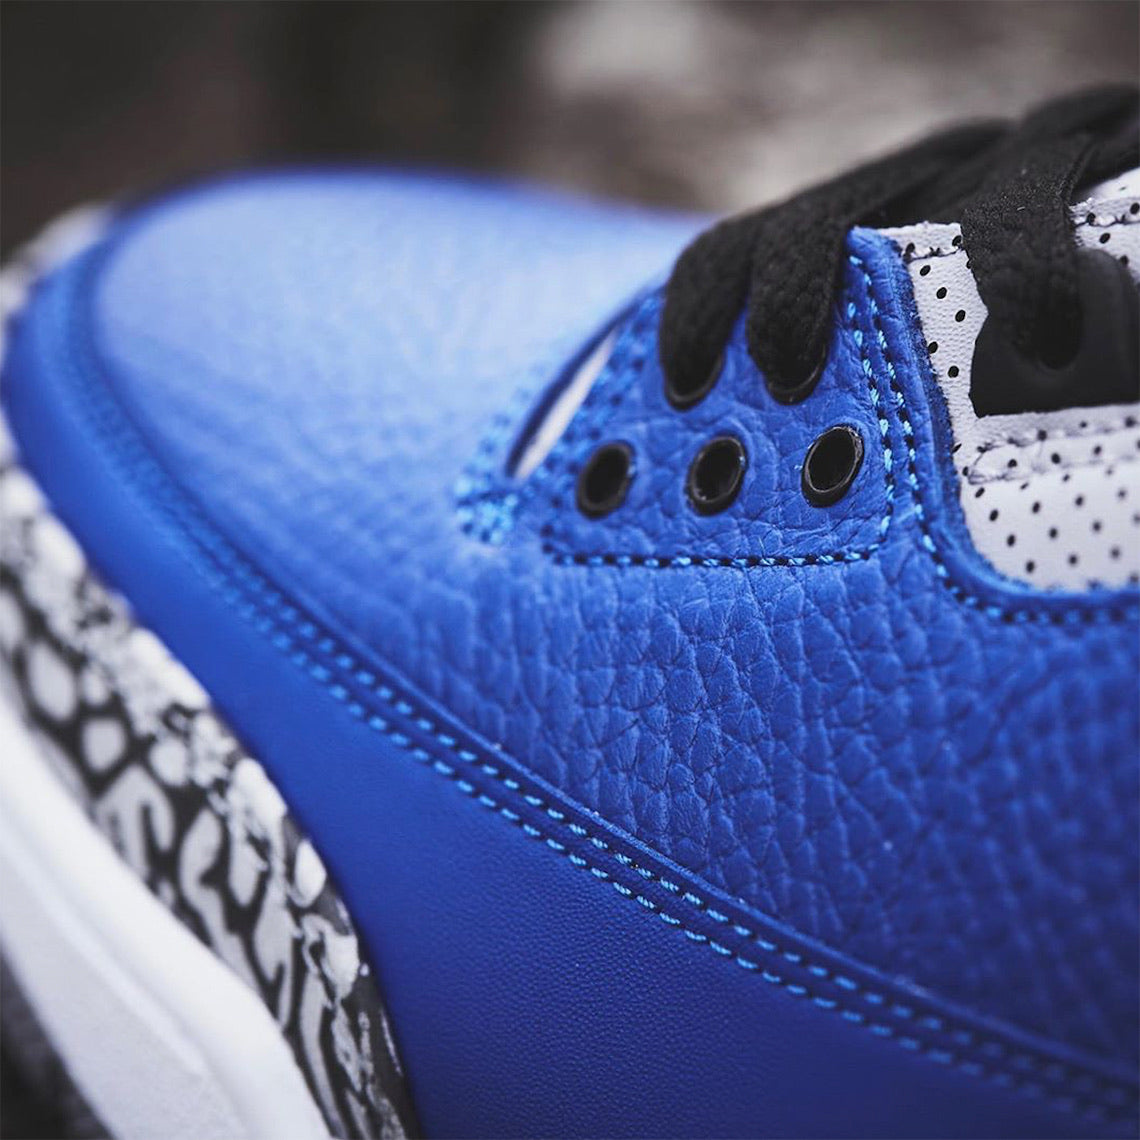 Gator 3 Royal Blue